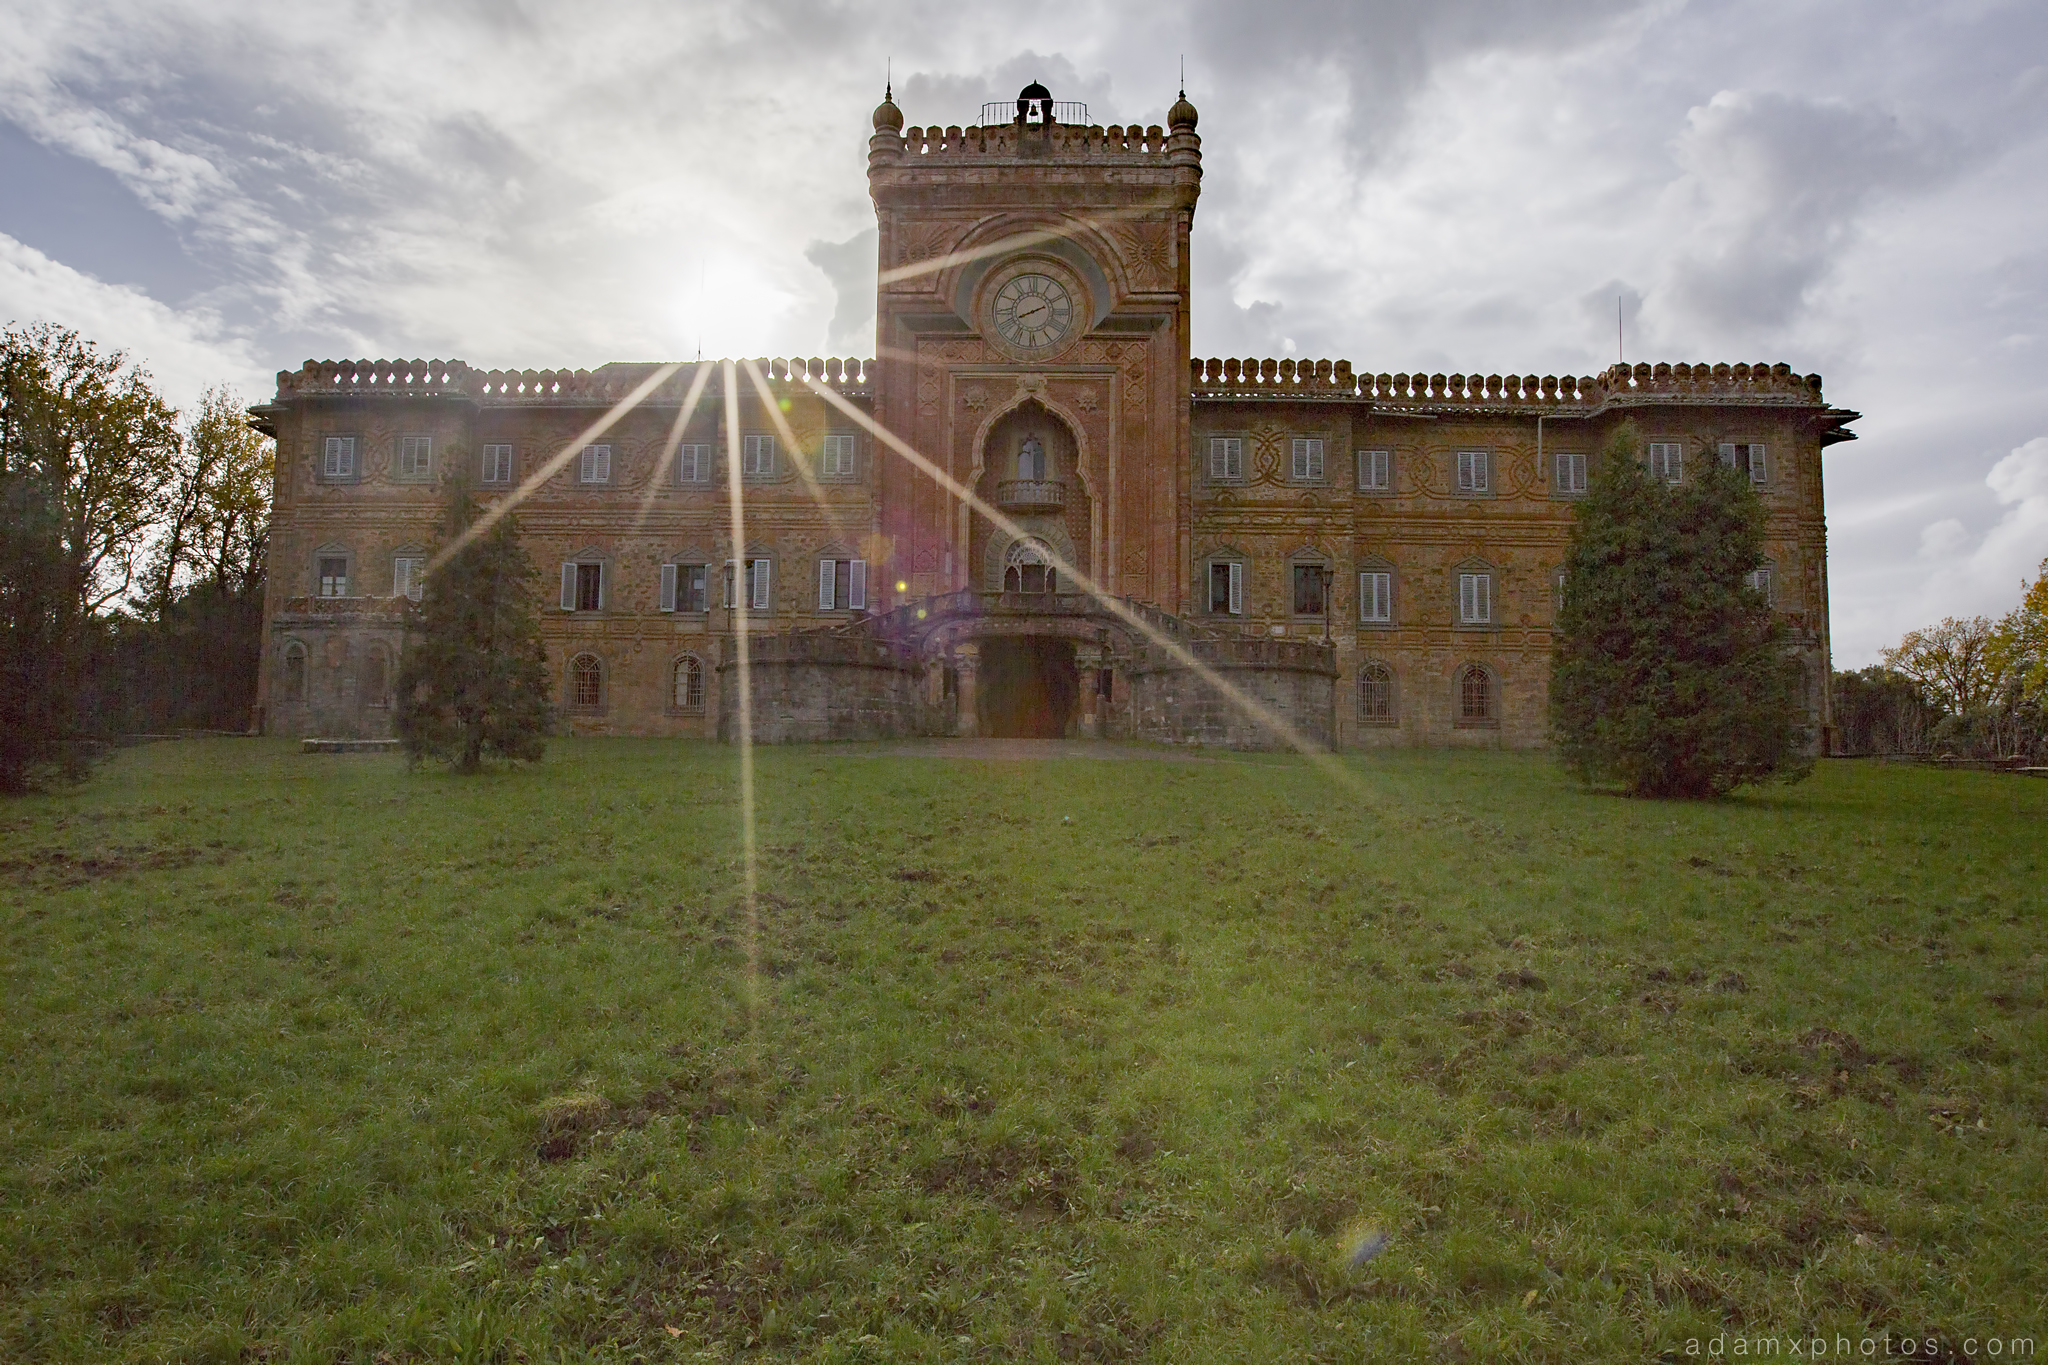 Exterior facade front lawn sunburst Non Plus Ultra Fairytale Castle of Sammezzano Castello di Sammezzano Urbex Adam X Urban Exploration photo photos report decay detail UE abandoned Ornate Moorish tiling tiled derelict unused empty disused decay decayed decaying grimy grime